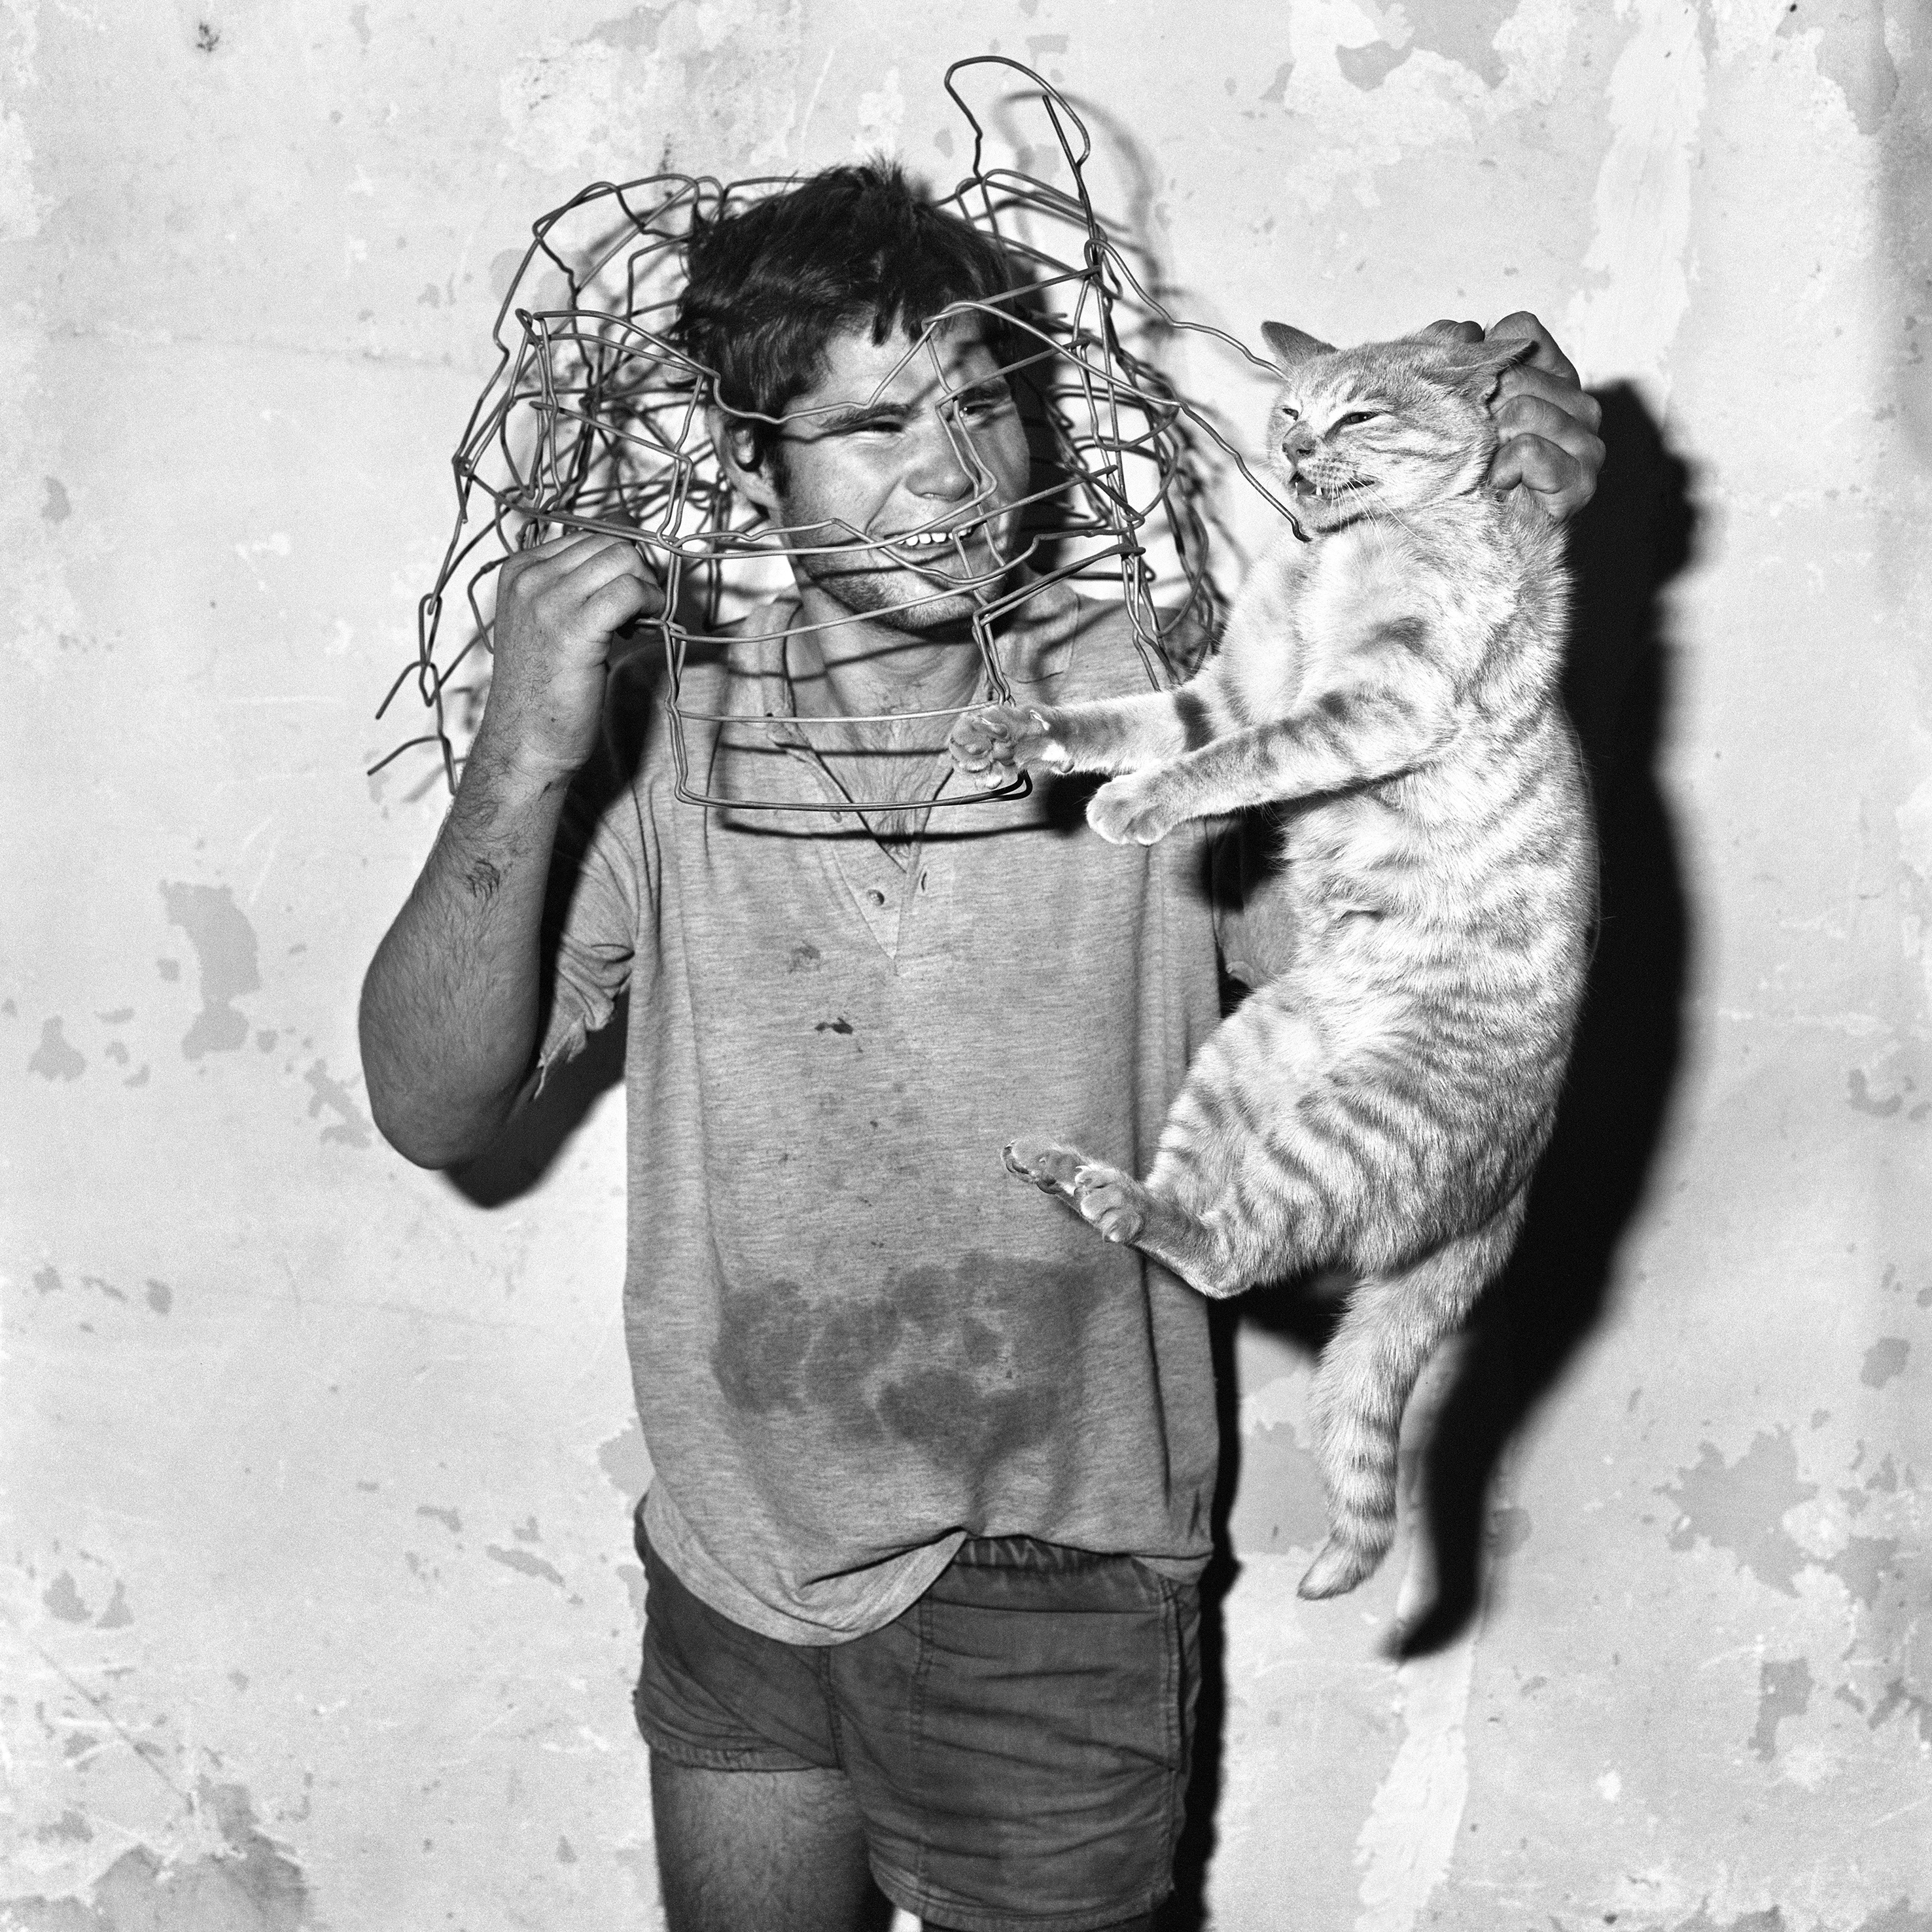 02_3_roger-ballen_cat-catcher-1998